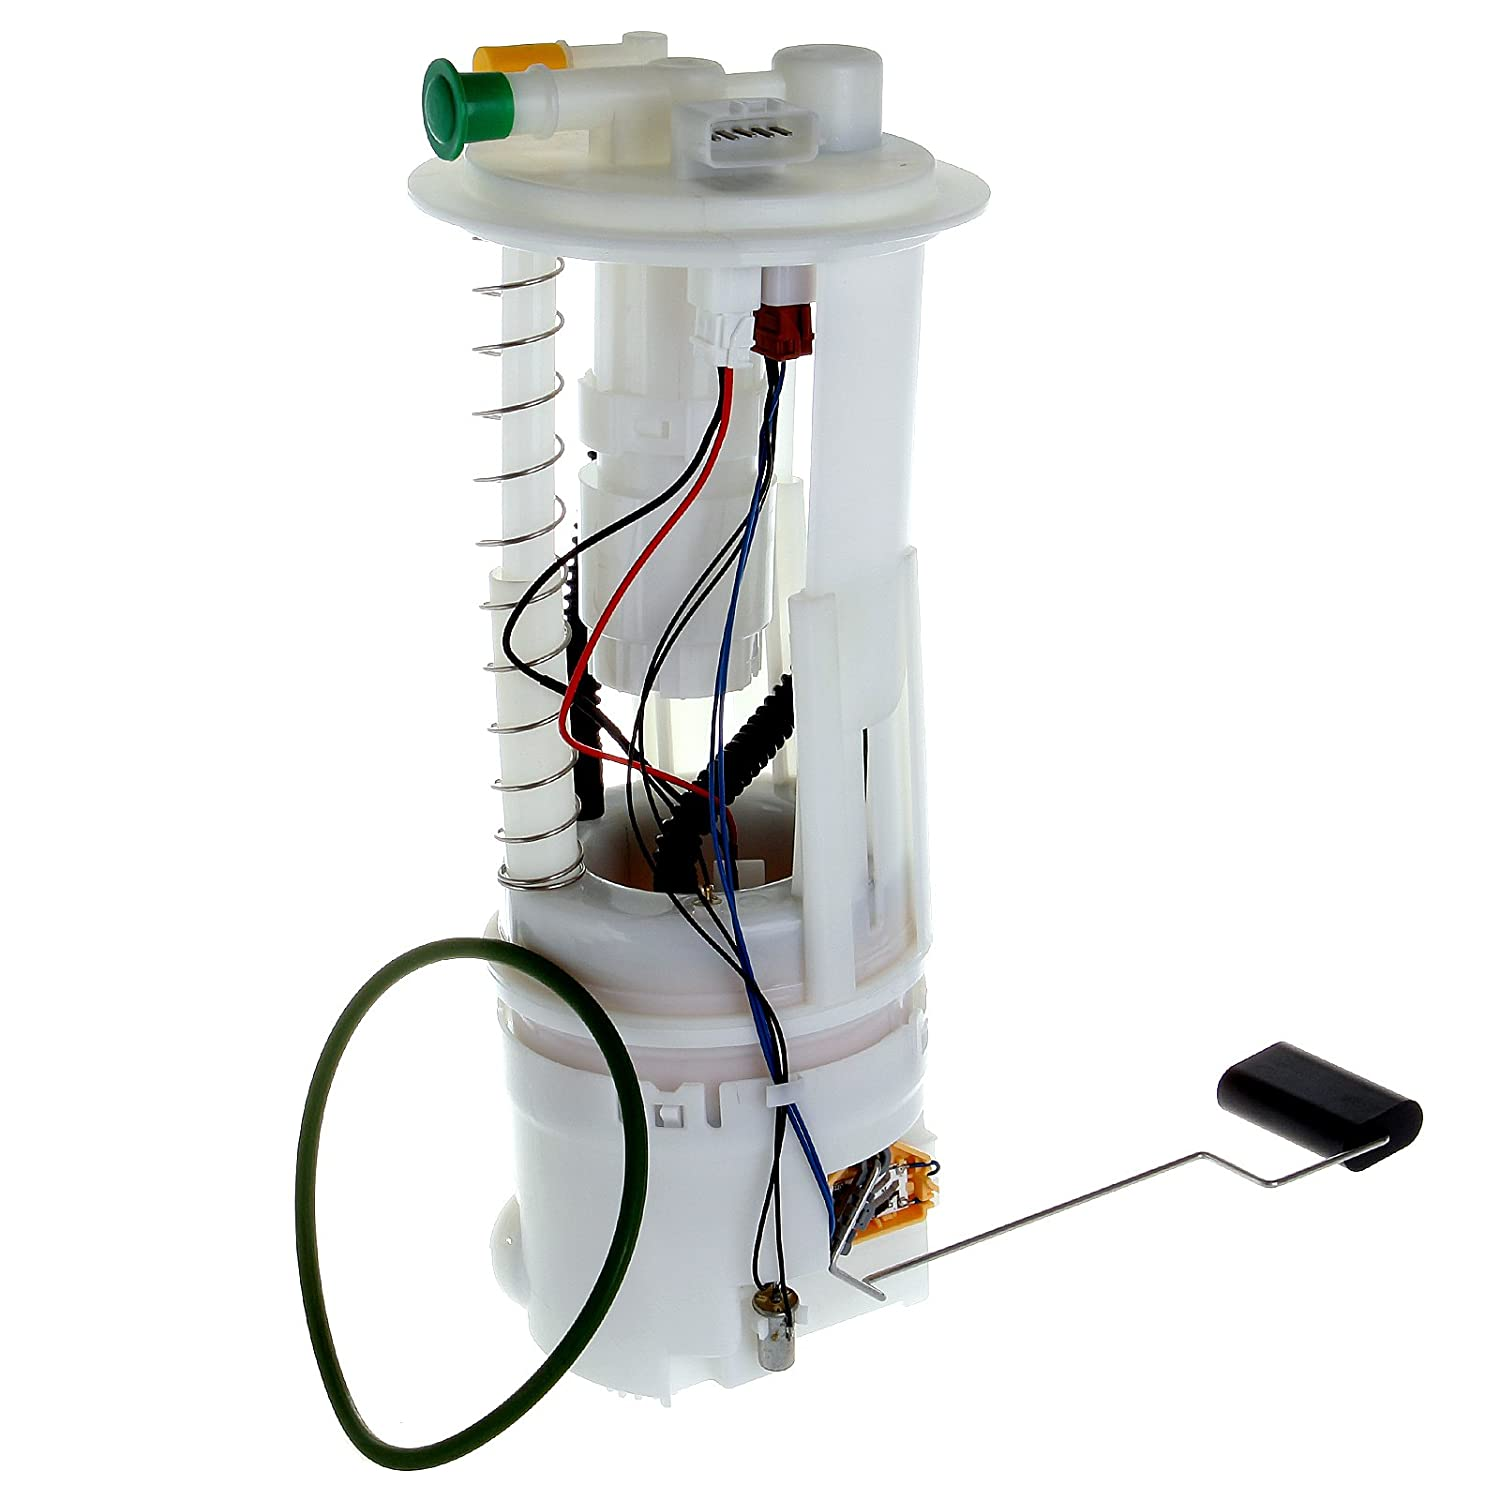 ECCPP Electric Fuel Pump Module Assembly w/Sending Unit Replacement for Nissan Frontier Pathfinder Xterra Suzuki Equator 2005 2006 2007 2008 2009 2010 2011 2012 2013 2014 2015 L4 2.5L V6 4.0L E8743M 053112-5211-1403151